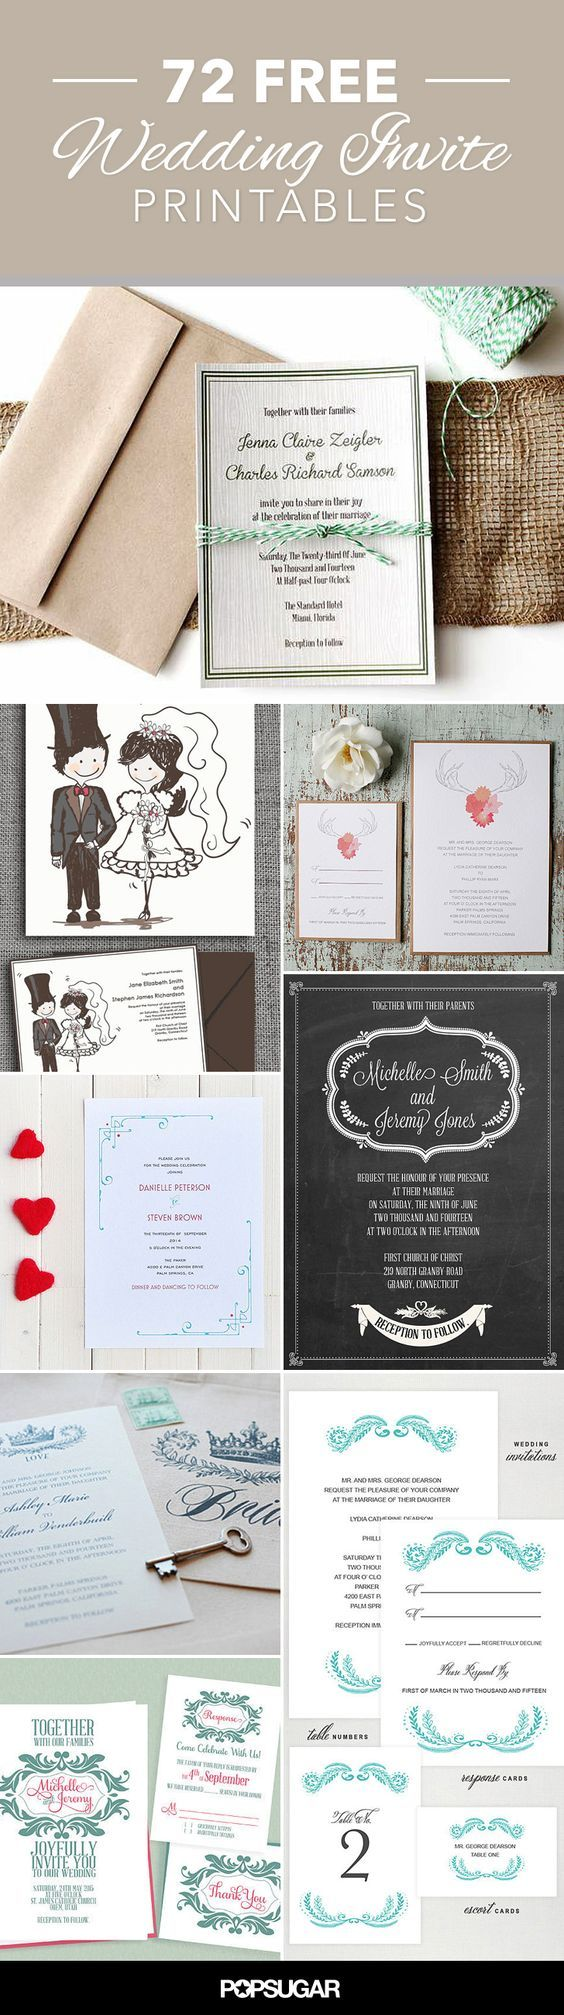 printable samples of wedding invitations%0A    Beautiful WeddingInvite Printables to Download For Free